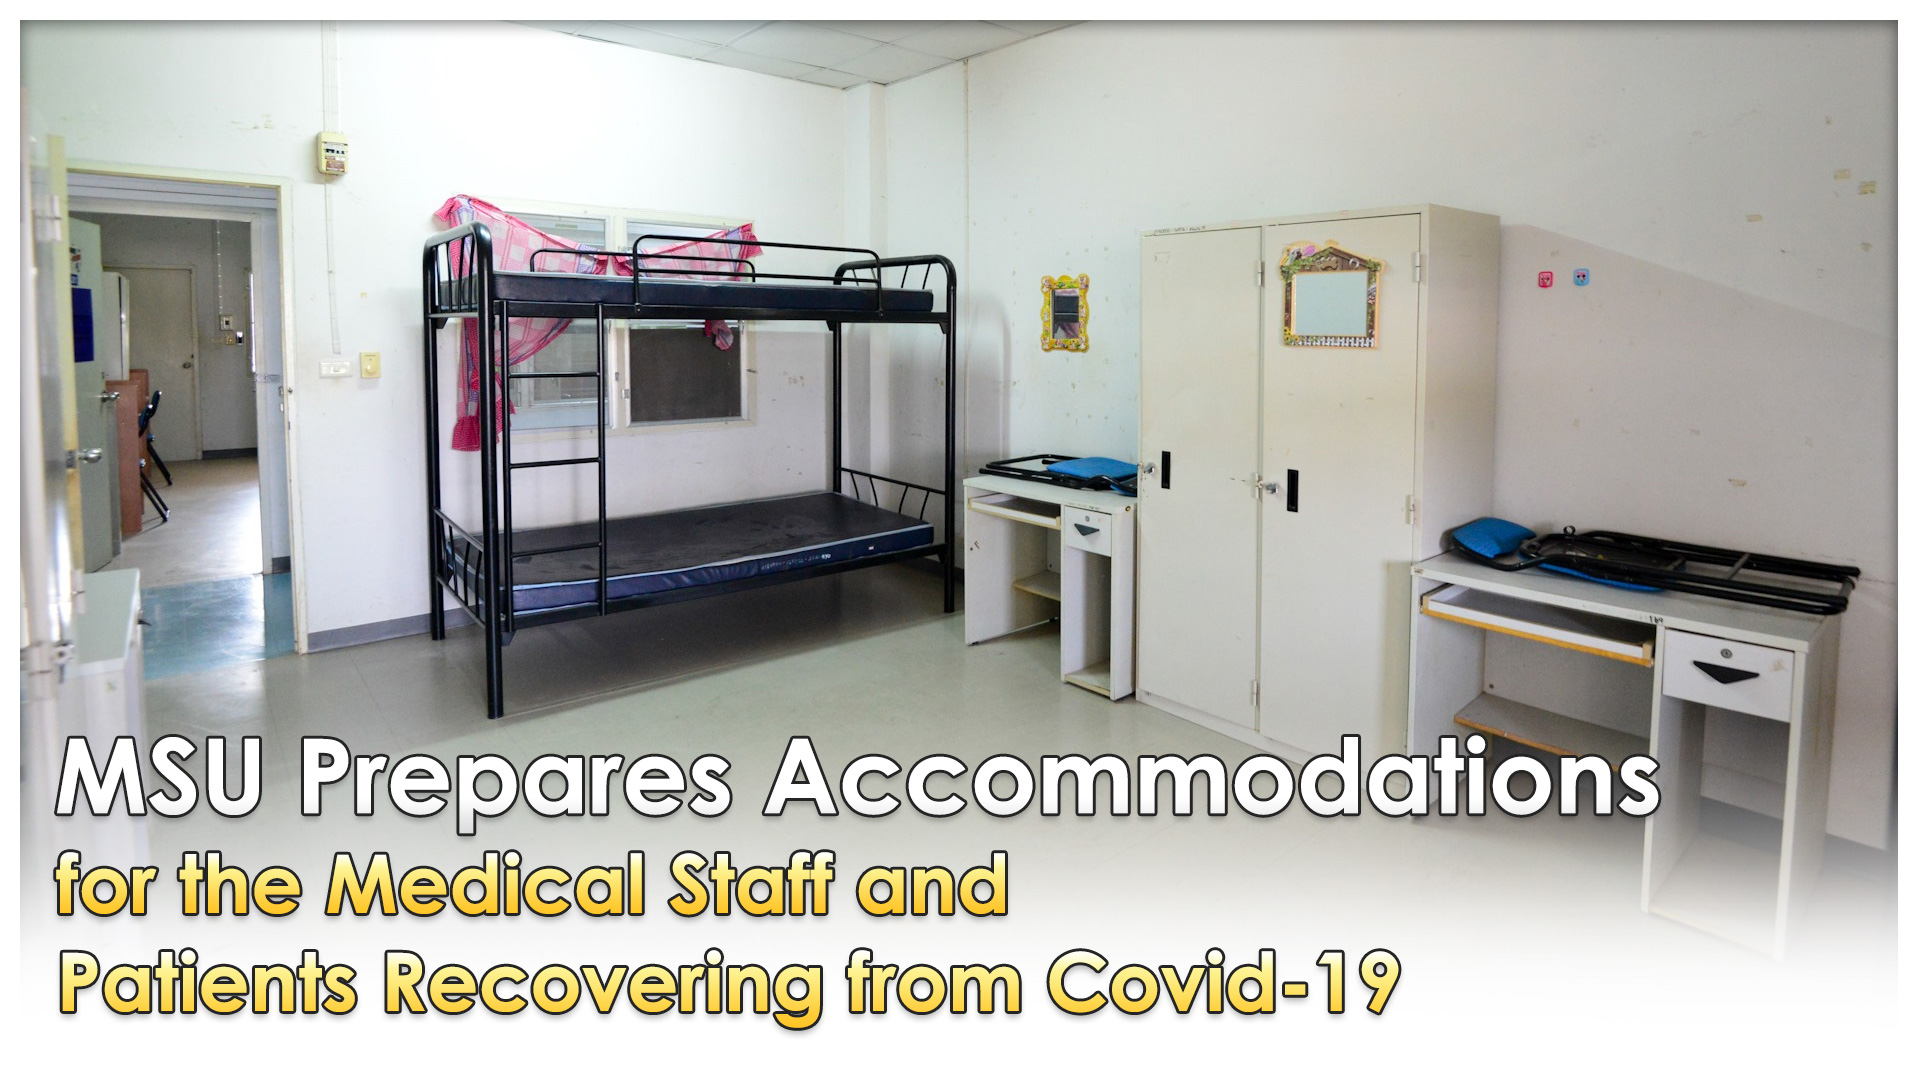 MSU Prepares Accommodations for the Medical Staff and Patients Recovering from Covid-19.